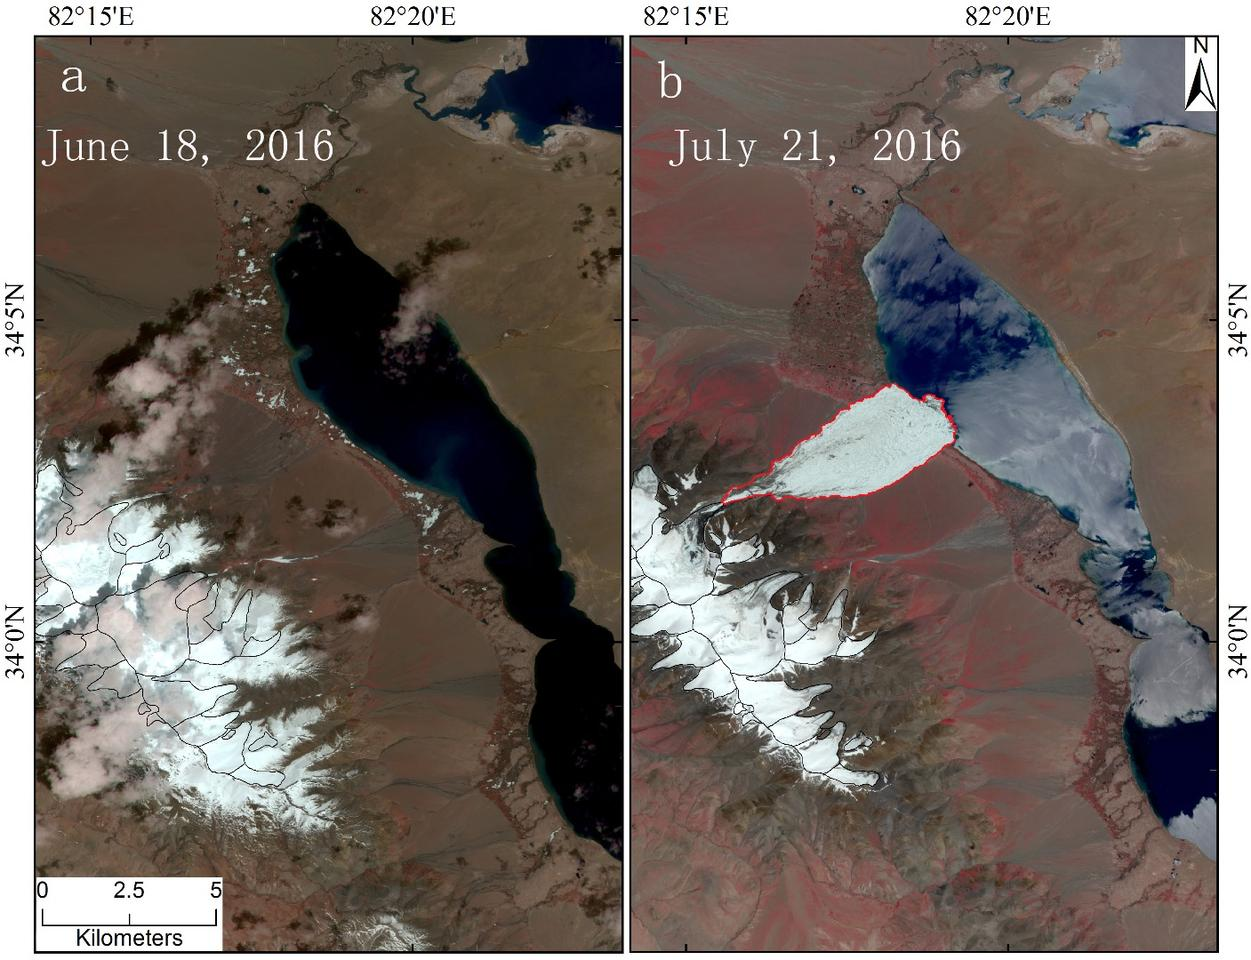 Satellite images show thebefore (left) and just after (right) ofthe Aru Glacier collapse that occurred on July 17, 2016 in western Tibet